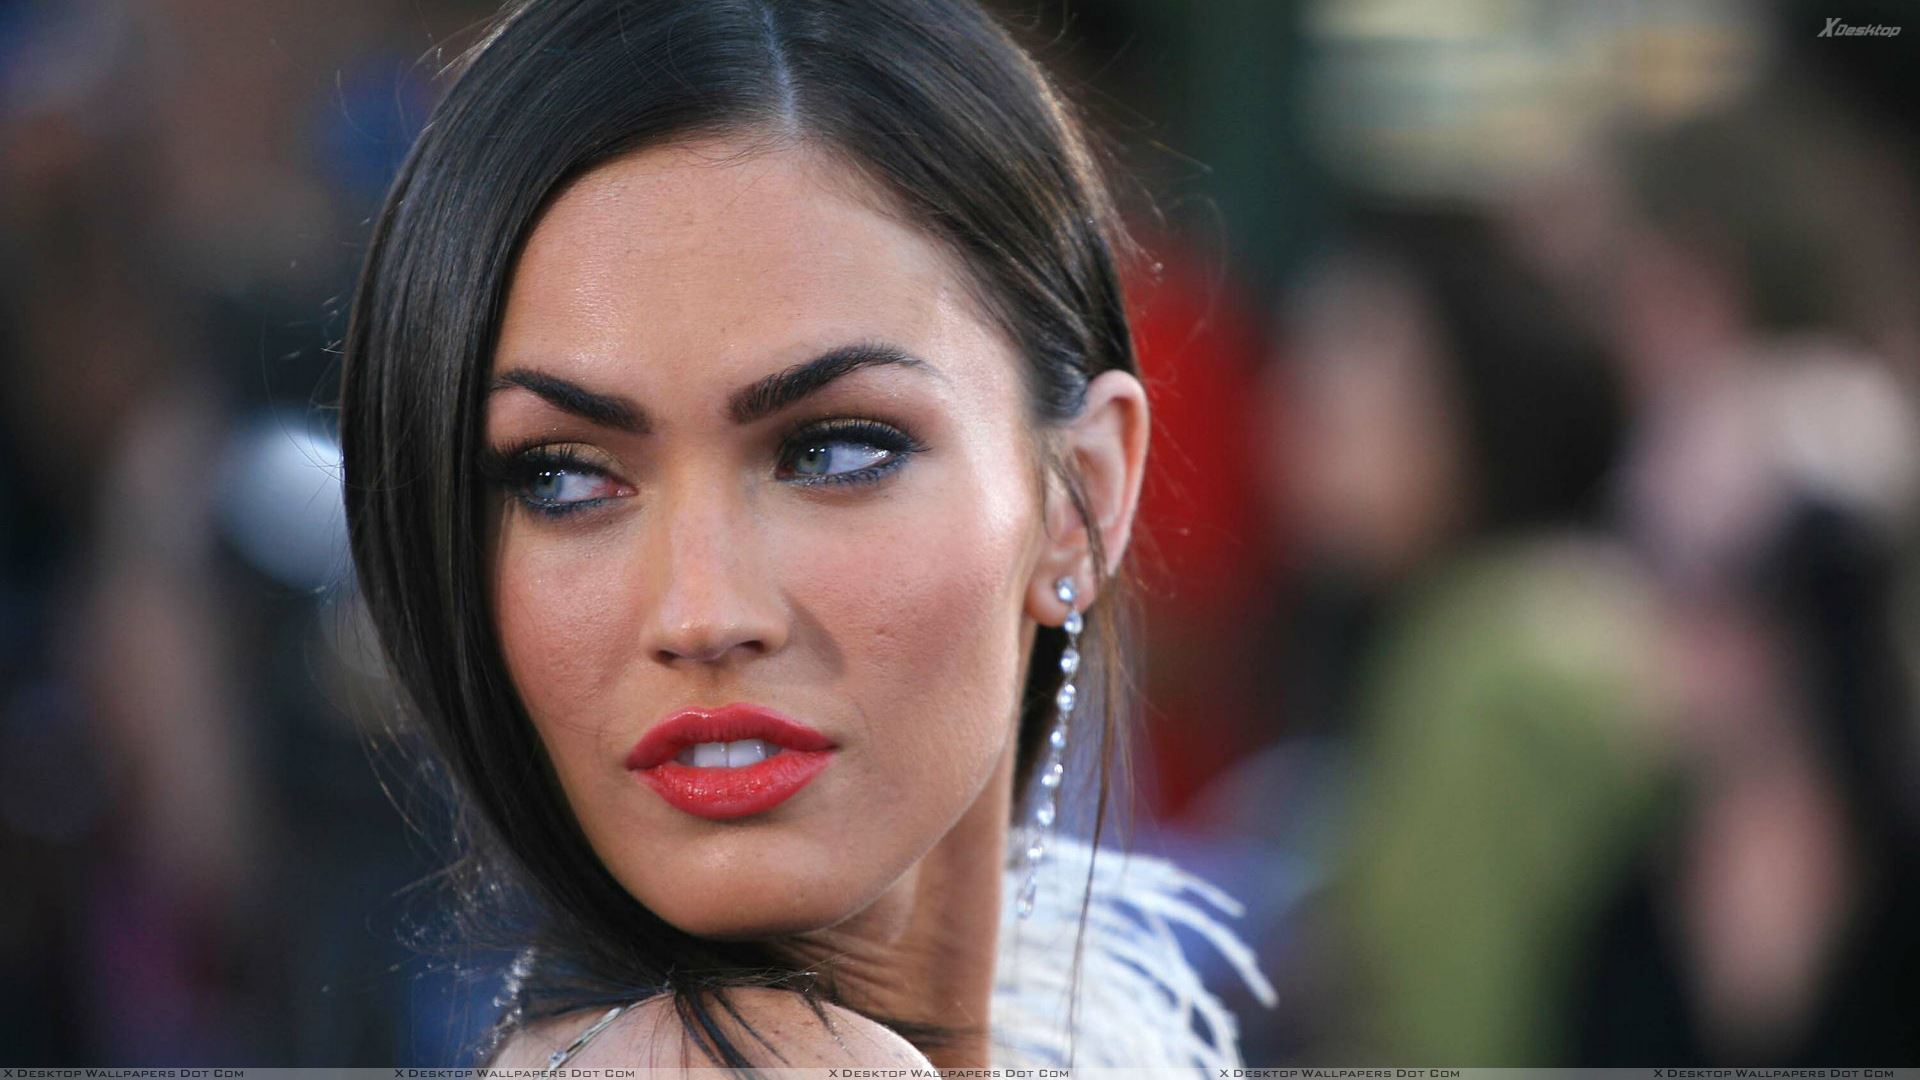 megan fox wallpapers, photos & images in hd